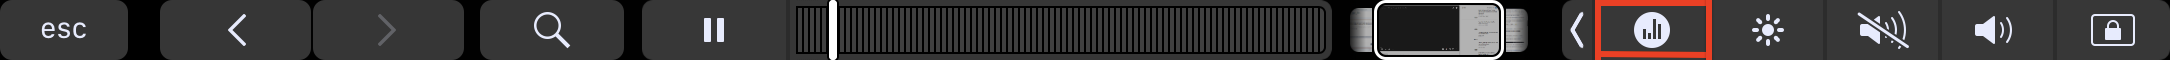 Touch Bar Shot 2017-01-07 at 11.44.46 AM.png